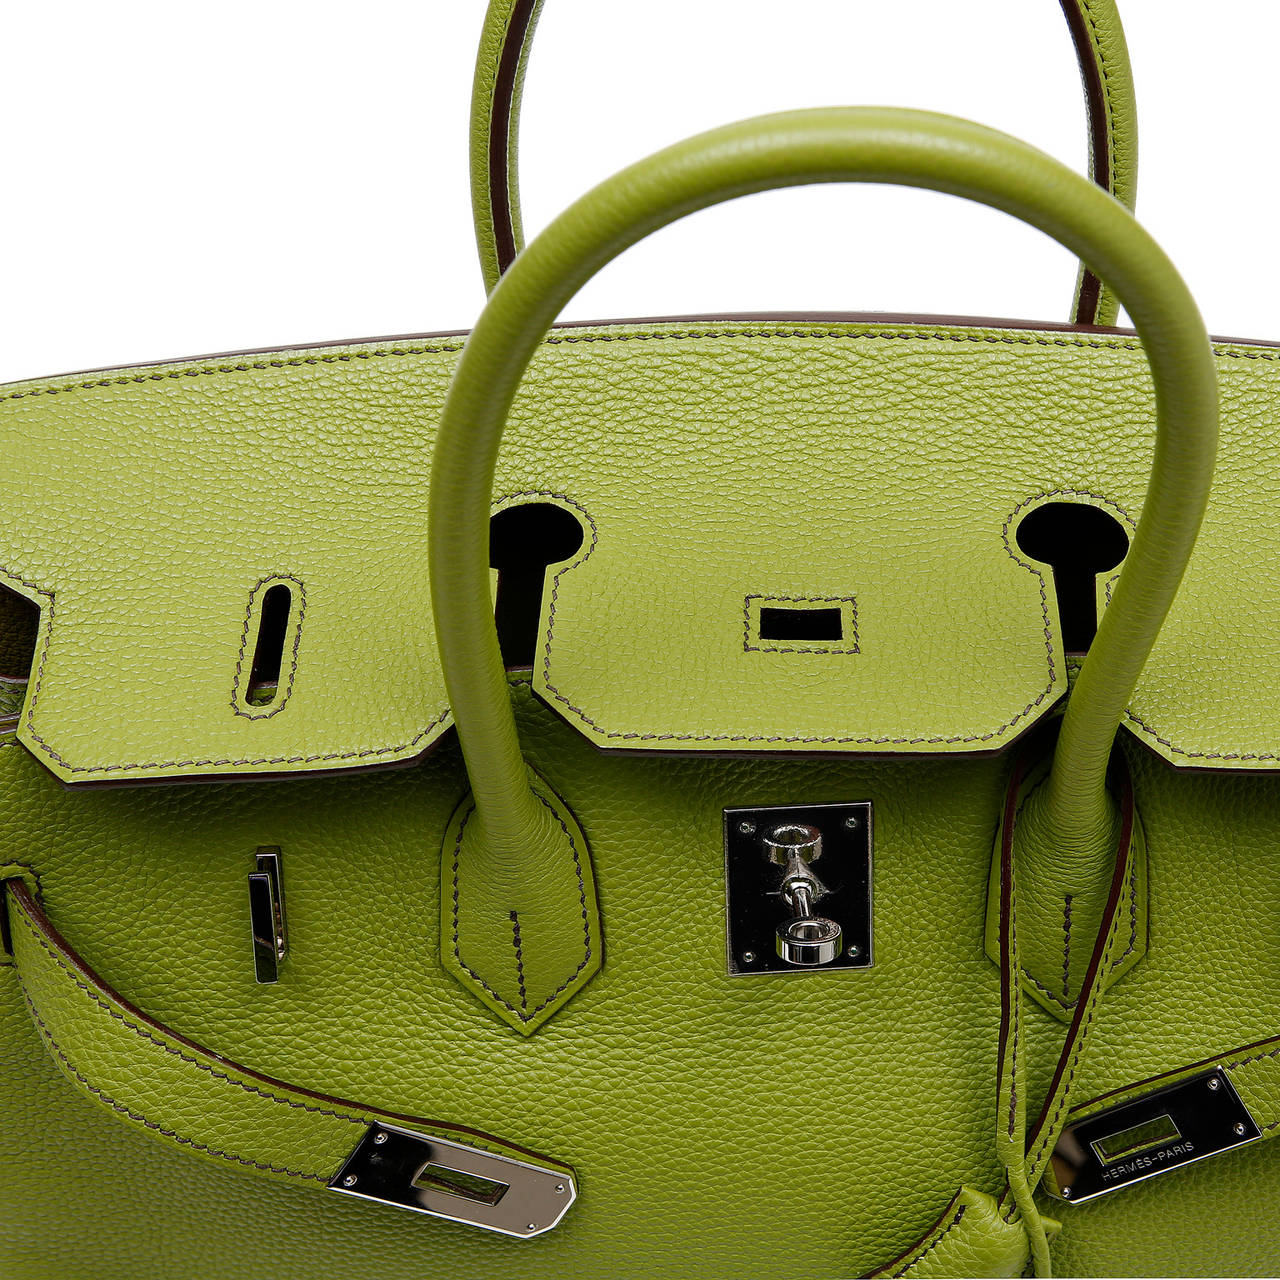 Hermes Vert Anis Green Togo  35 cm Birkin with PHW For Sale 2